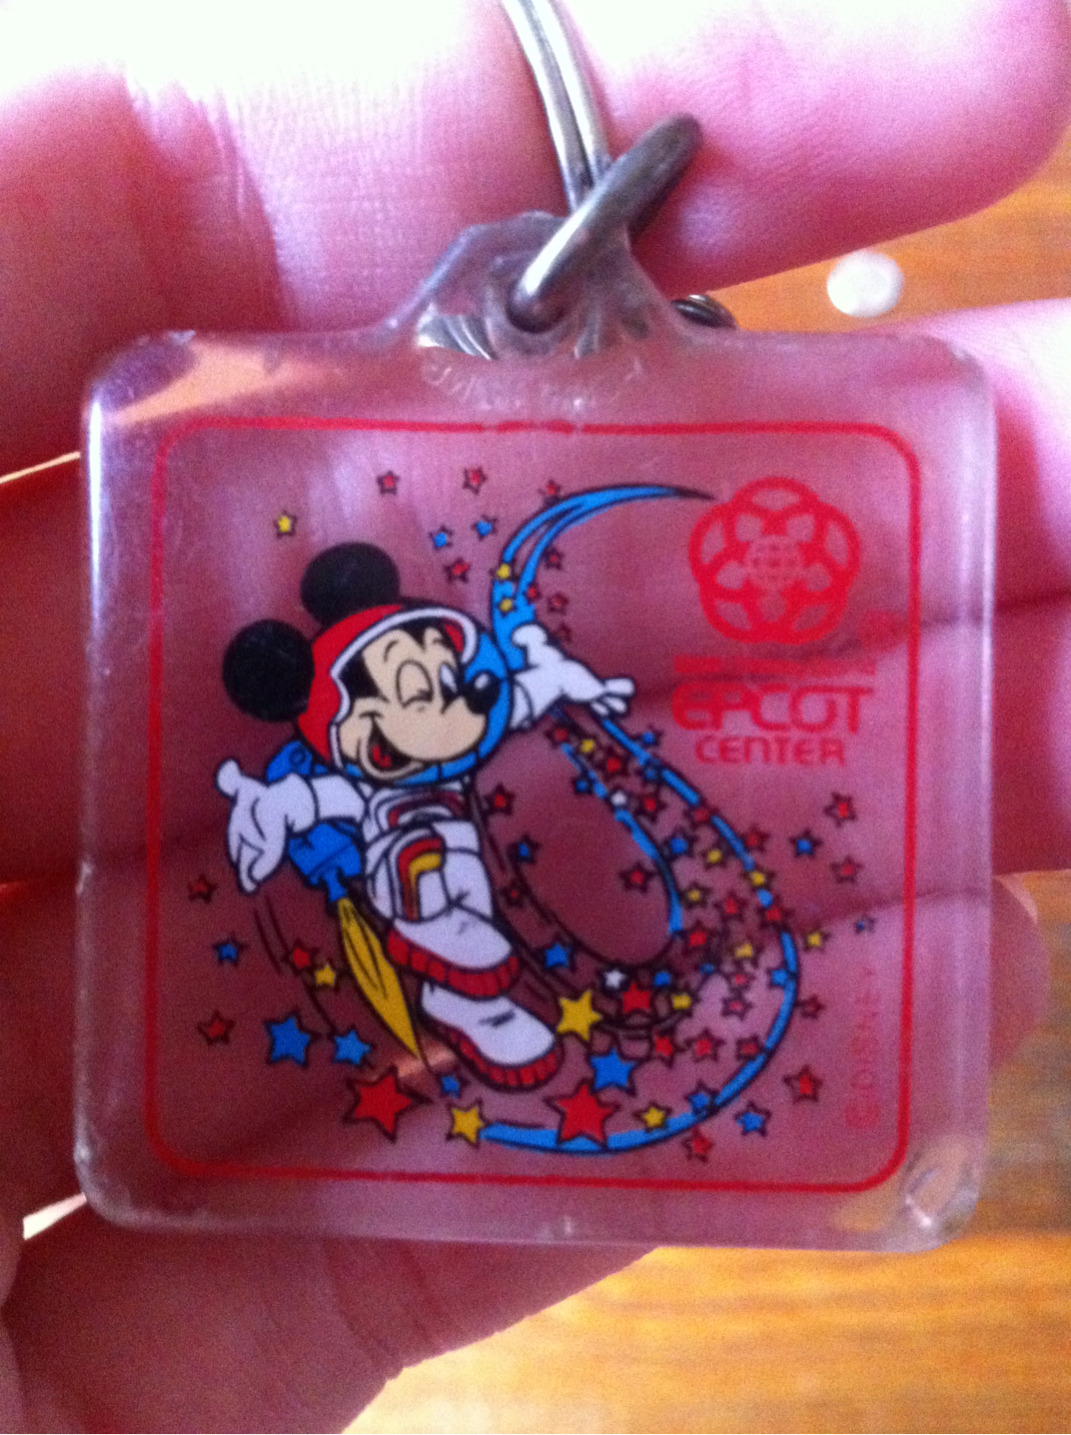 oswald-ears:  Soooo I found this keychain at my grandmom's house. Best keychain ever omg.